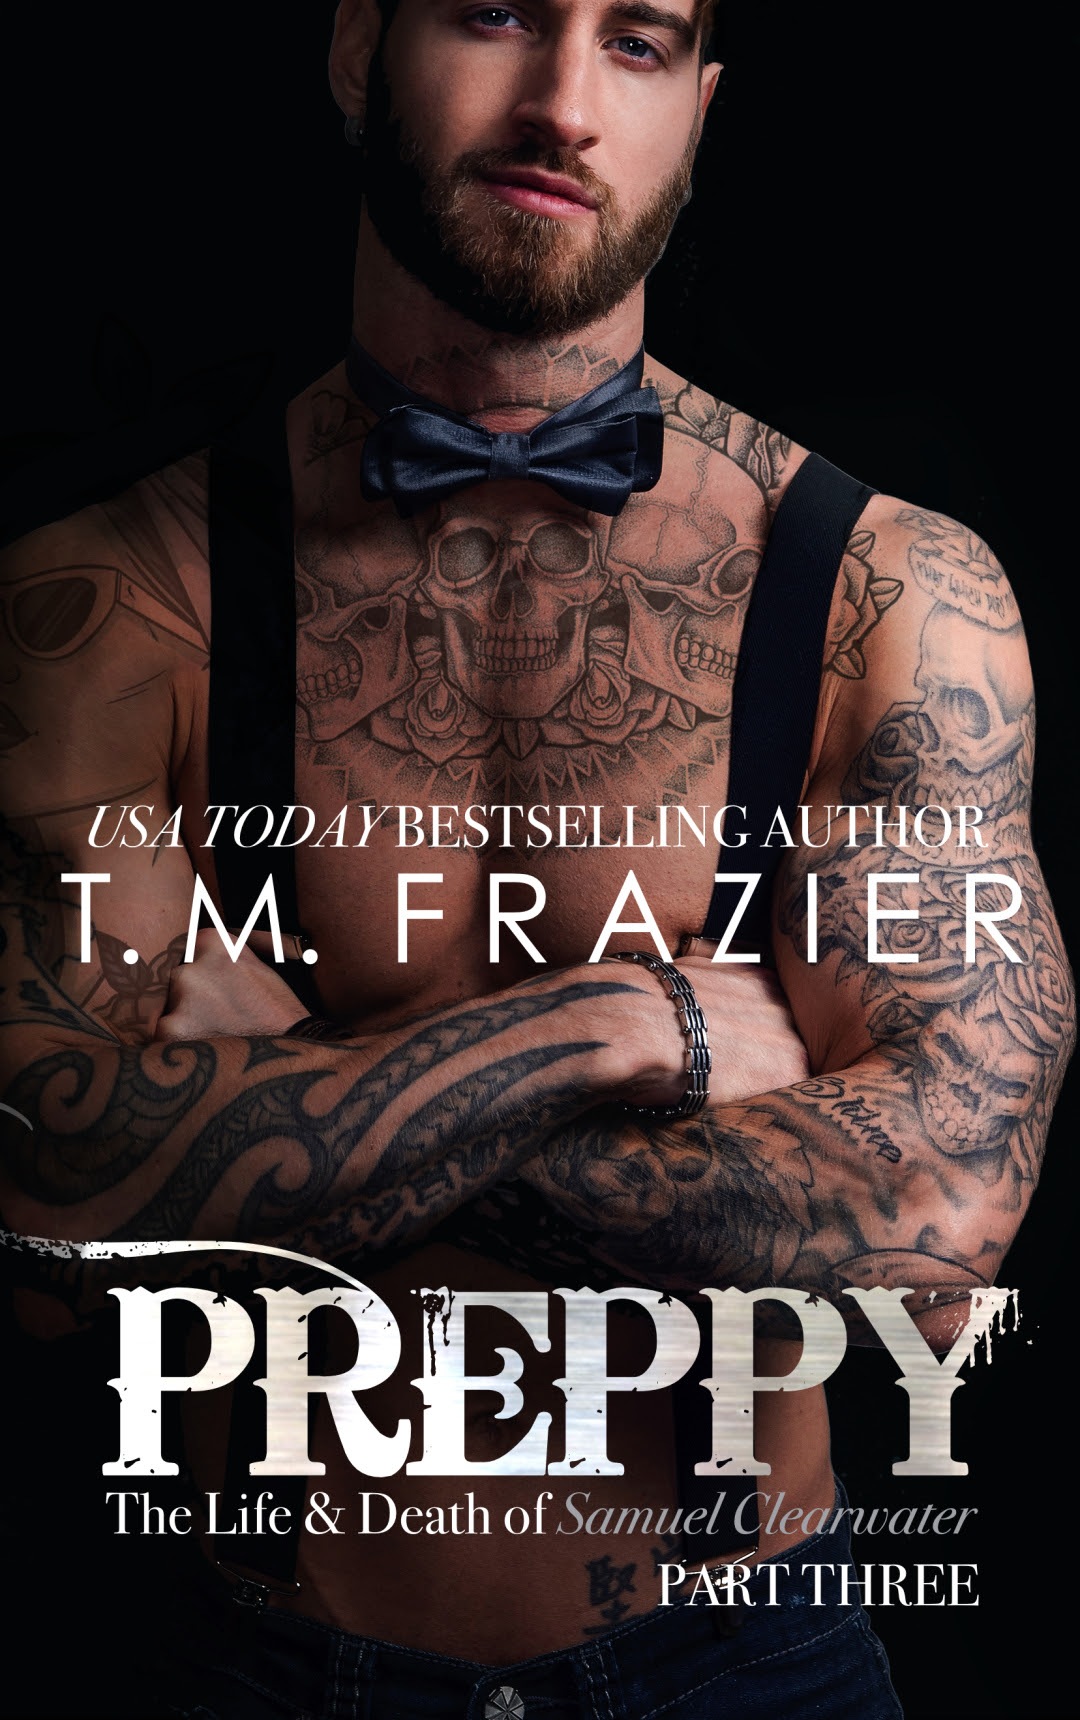 COVER REVEAL * Preppy: The Life and Death of Samuel Clearwater, Part III (King series, book 7) by T.M. Frazier * Pre-Order Links *